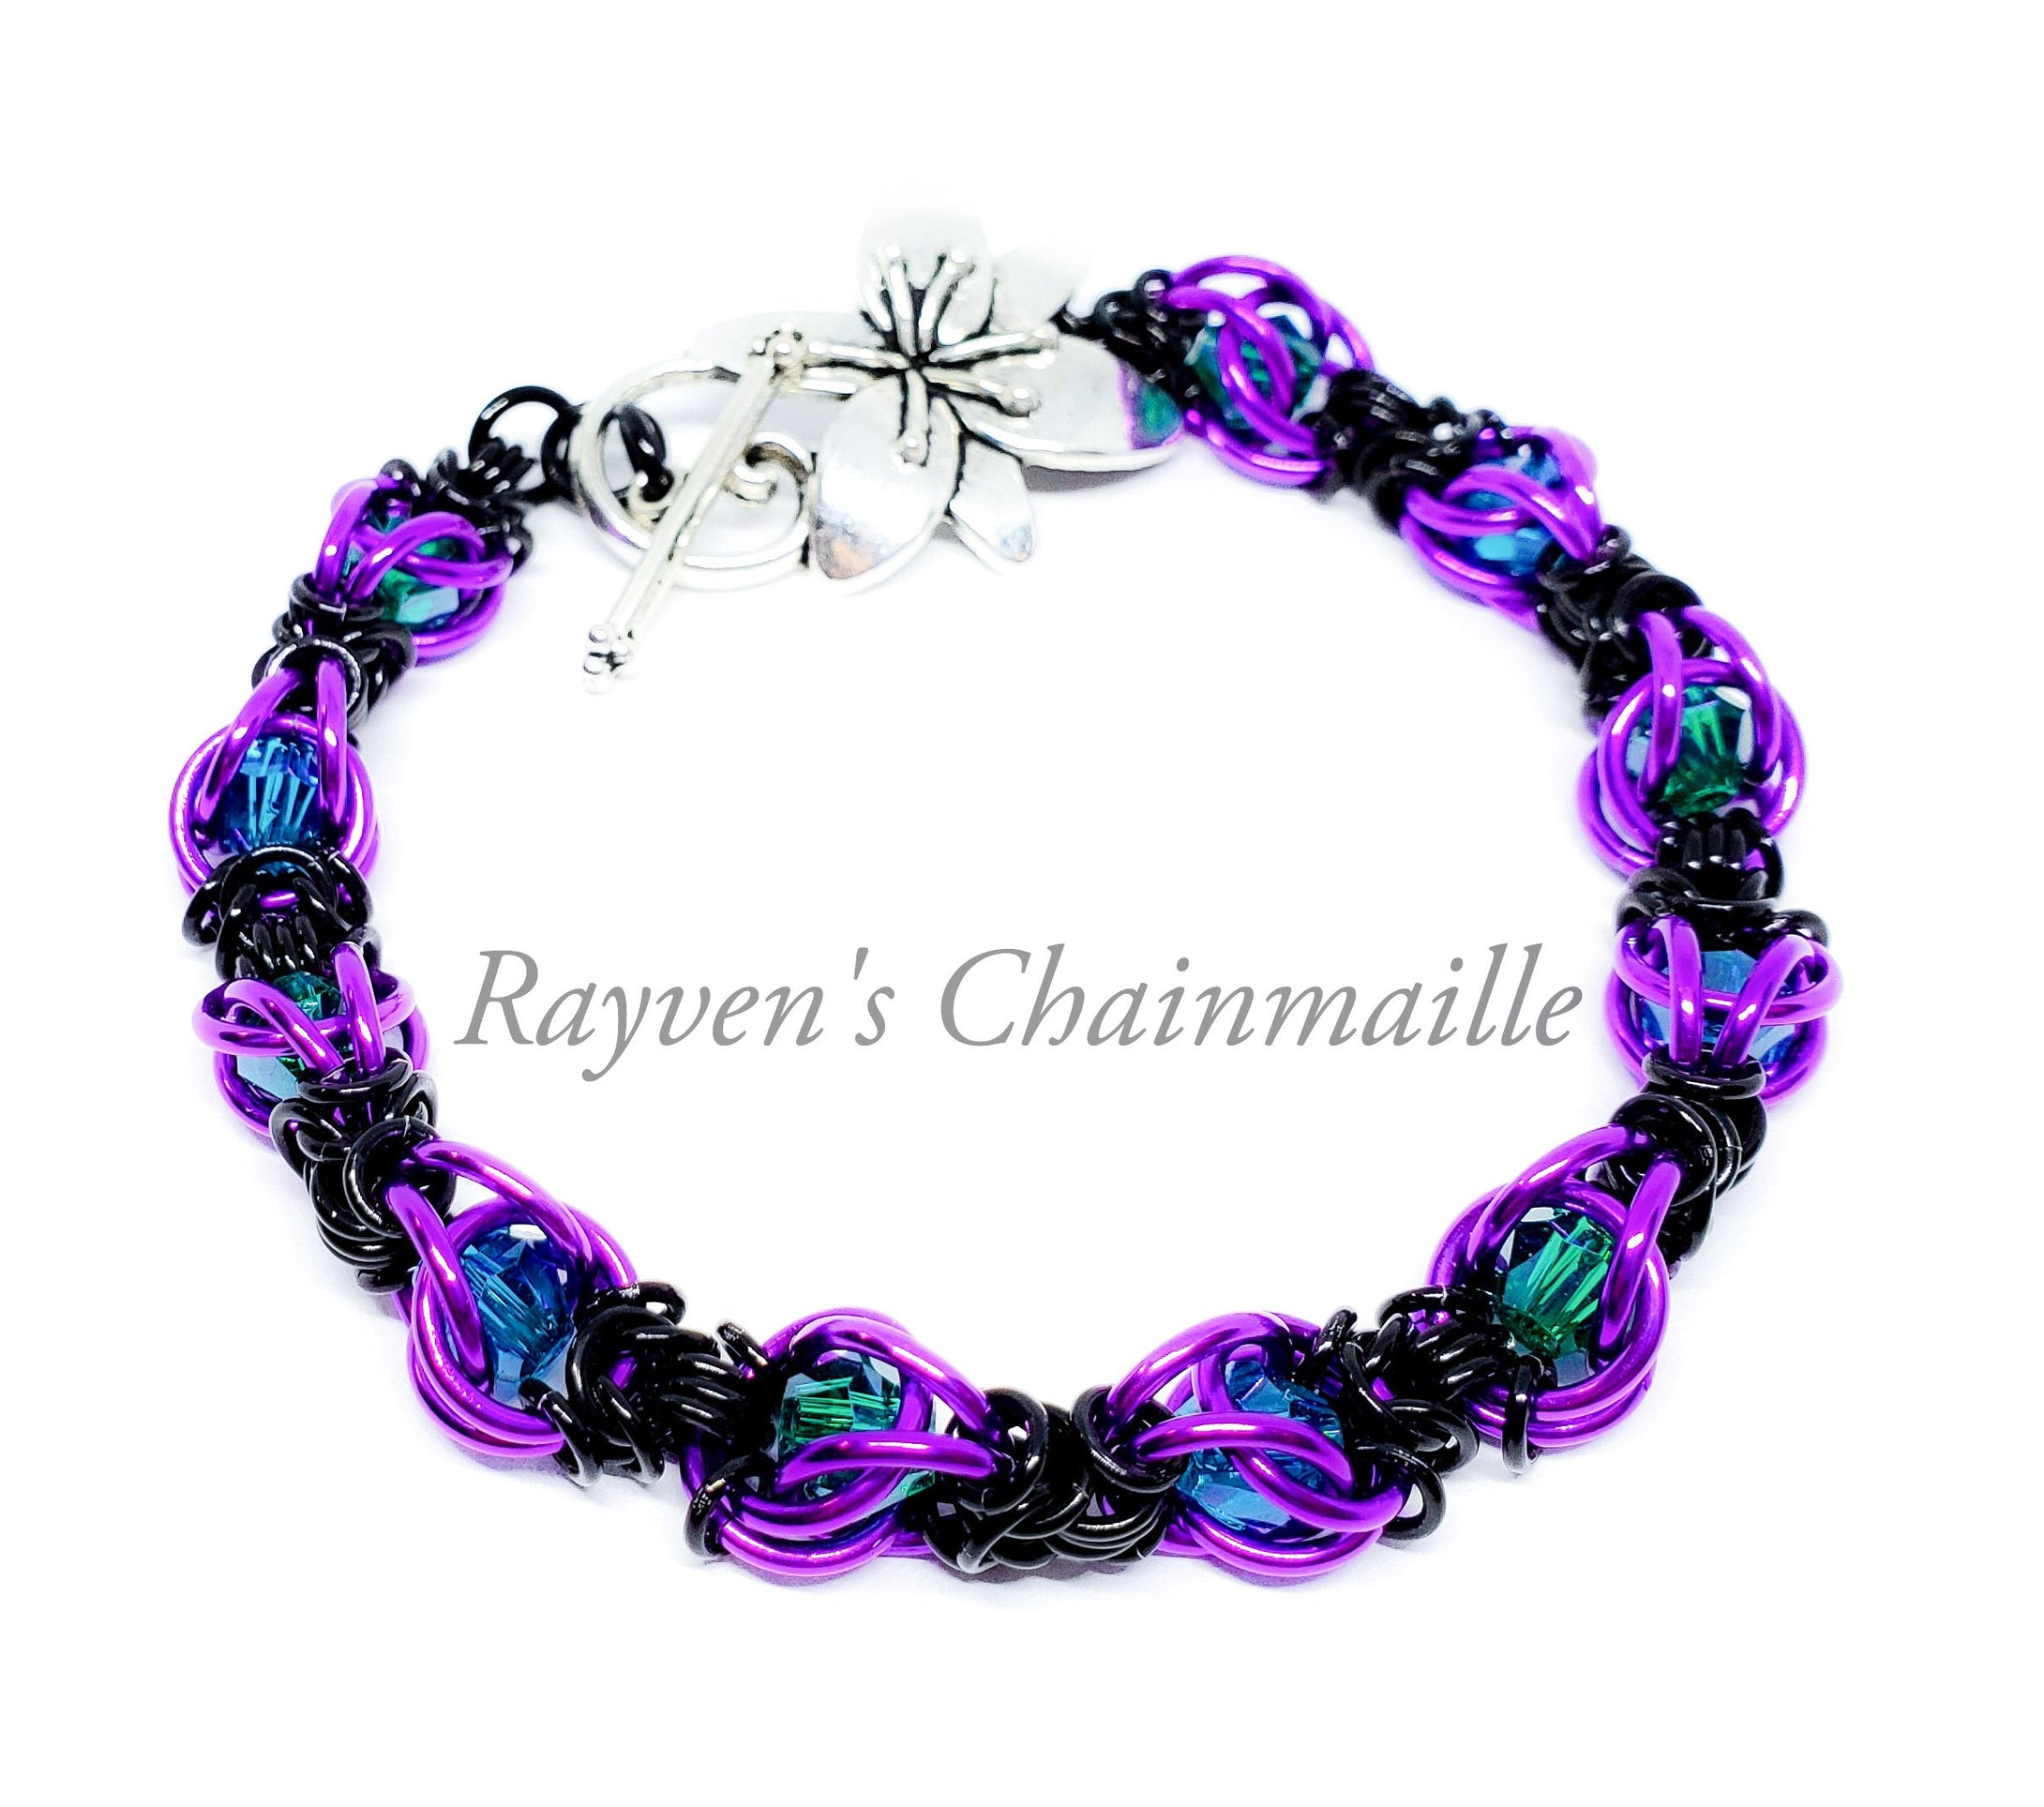 Violet, Black & Teal Captured Crystal Chainmaille Bracelet - Rayven's Chainmaille